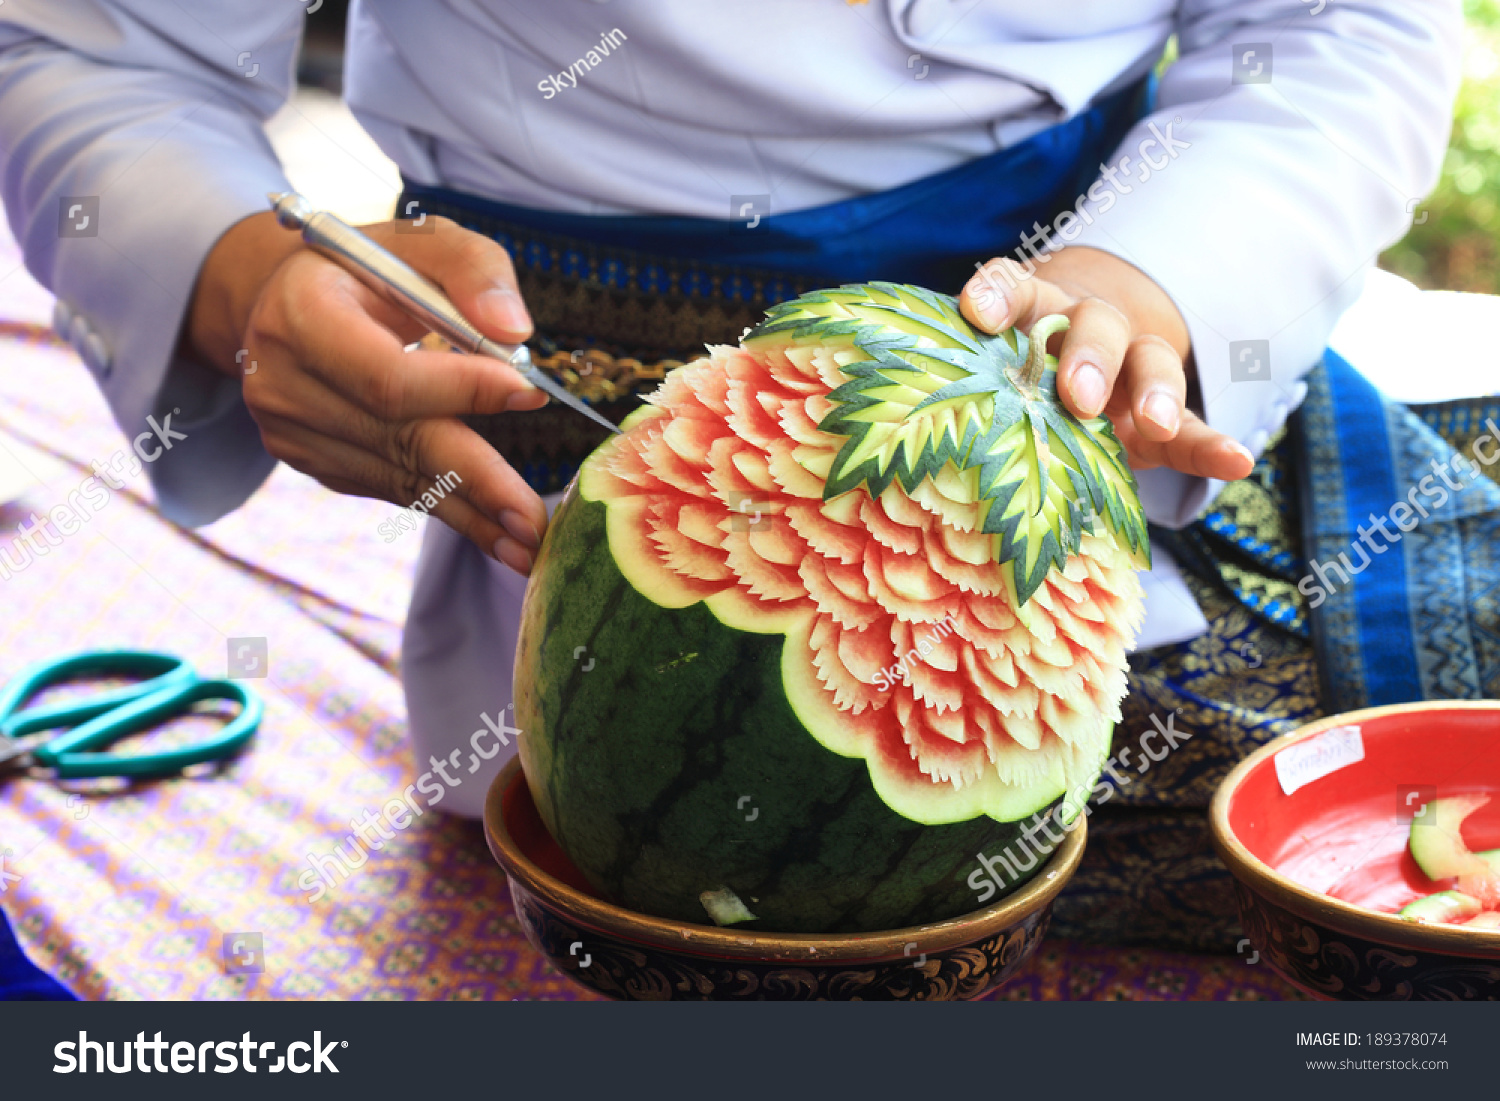 Watermelon carving stock photo safe to use  shutterstock